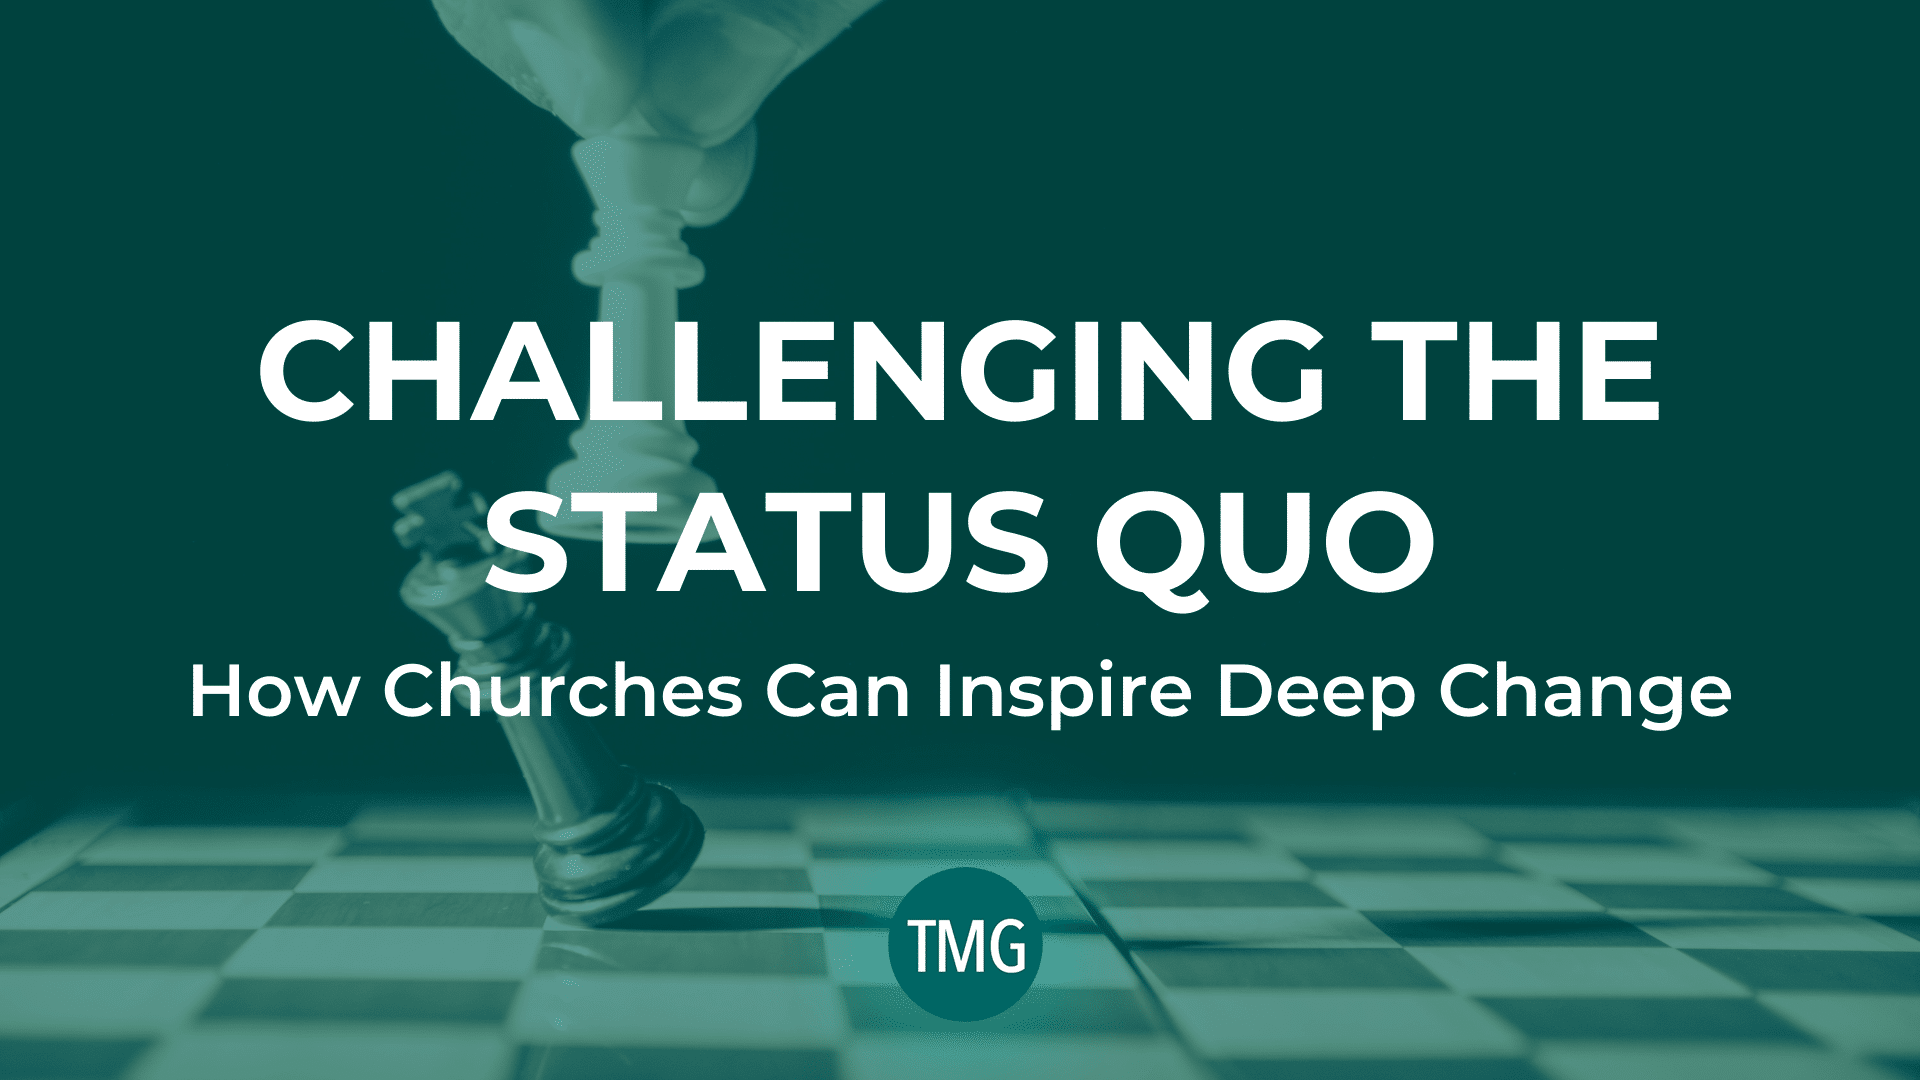 challenging-the-status-quo-how-churches-can-inspire-deep-change-header-image